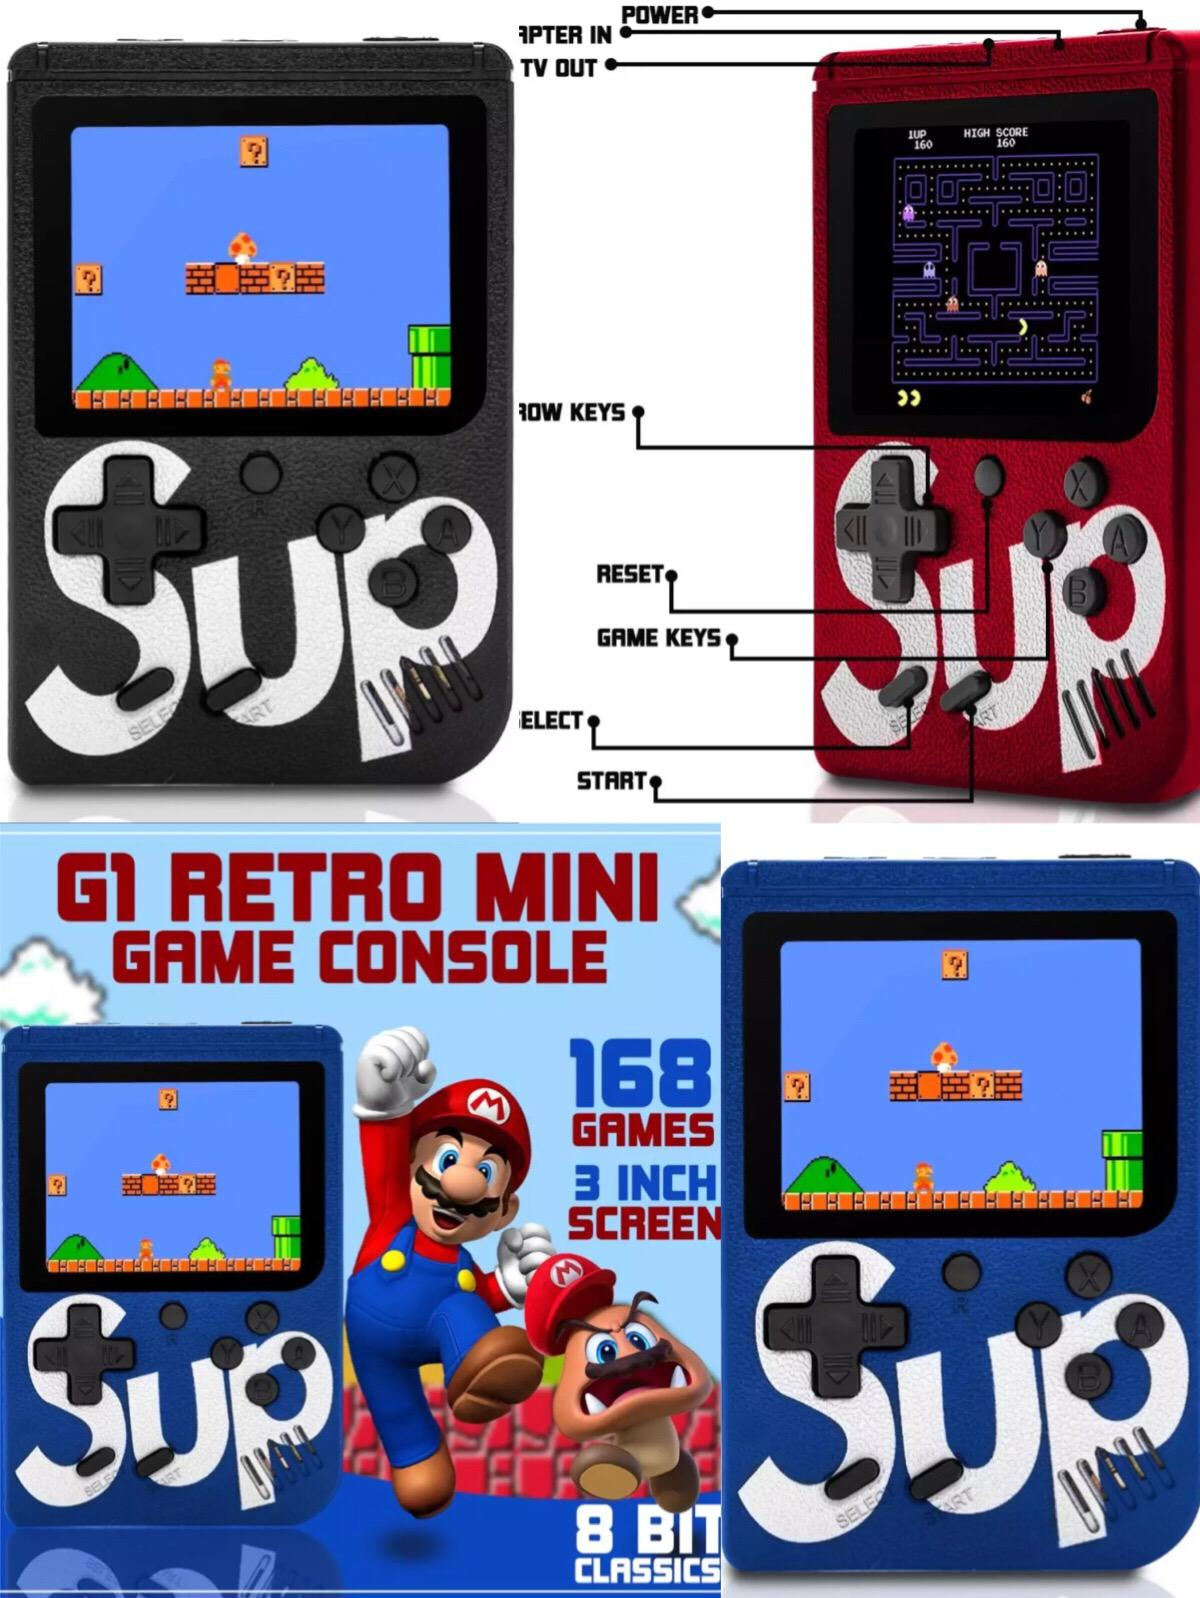 sup LHR G1 Retro FC Mini TV Handheld Game Console 8bit 3'LCD Classic Retro Game Player w/ 168 Games Pocket Consoles Children's Gaming Toy